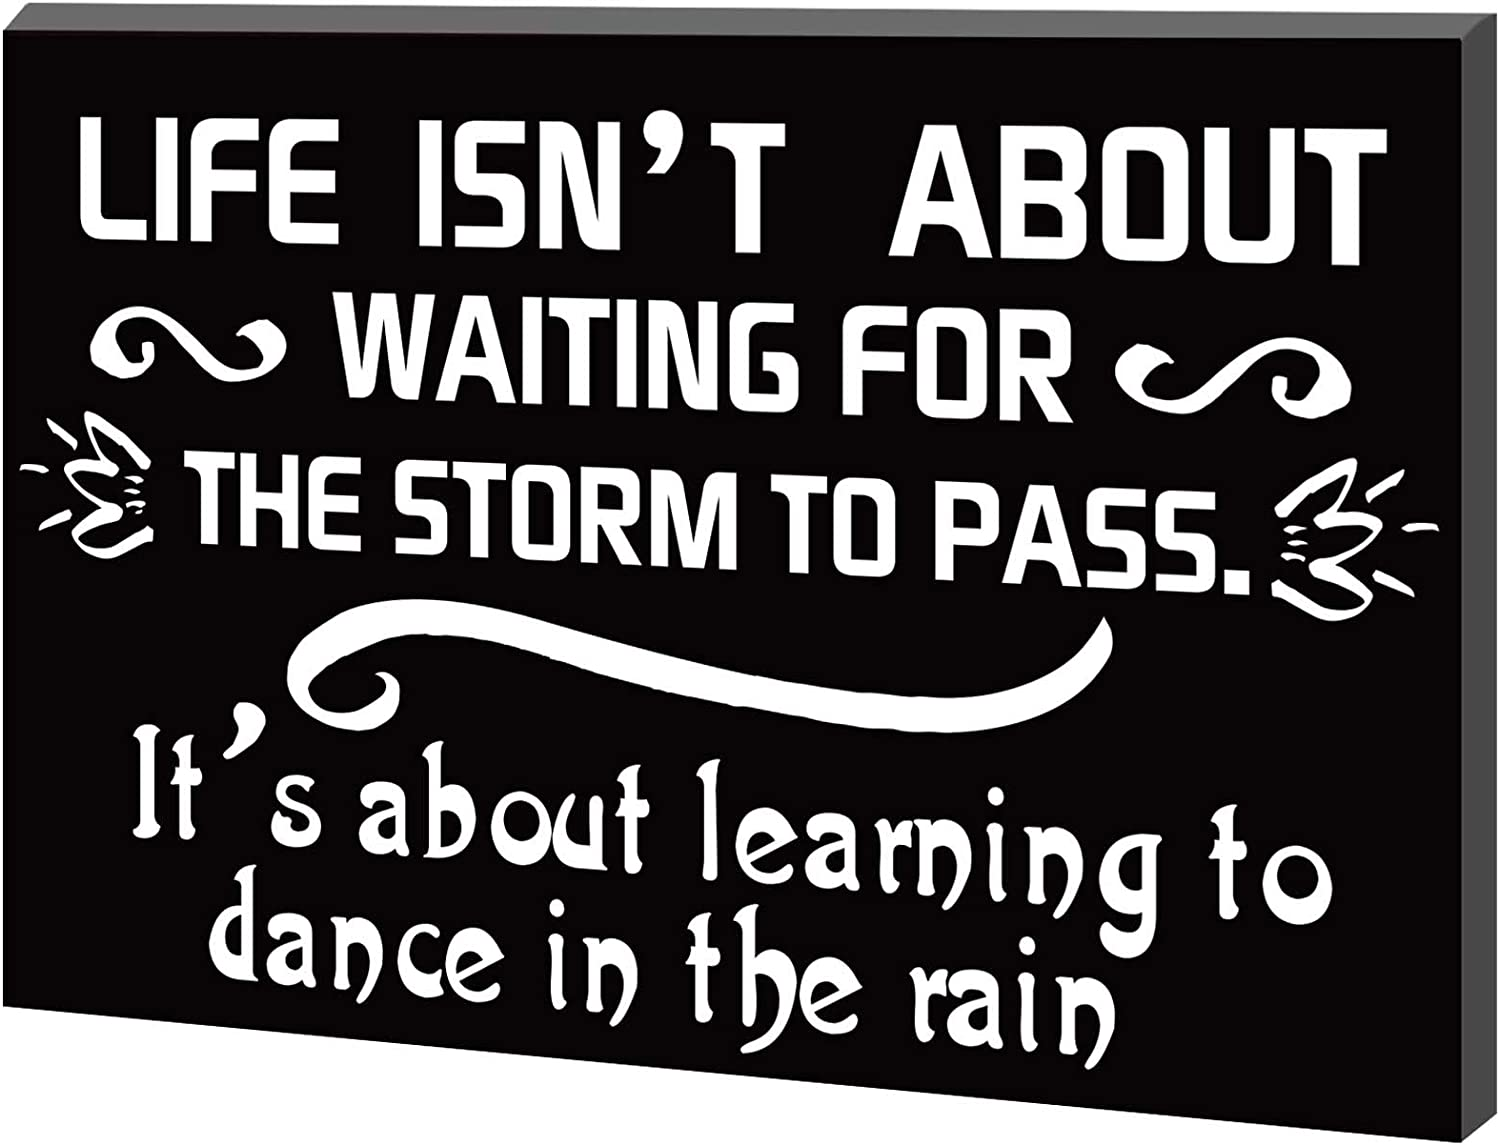 7.87 Inch Wooden Motivational Sign Inspirational Word Box Sign Dancing in The Rain Sign Block Life Isn't About Waiting for The Storm to Pass Positive Thought Home Room Wall Decor Table Decoration